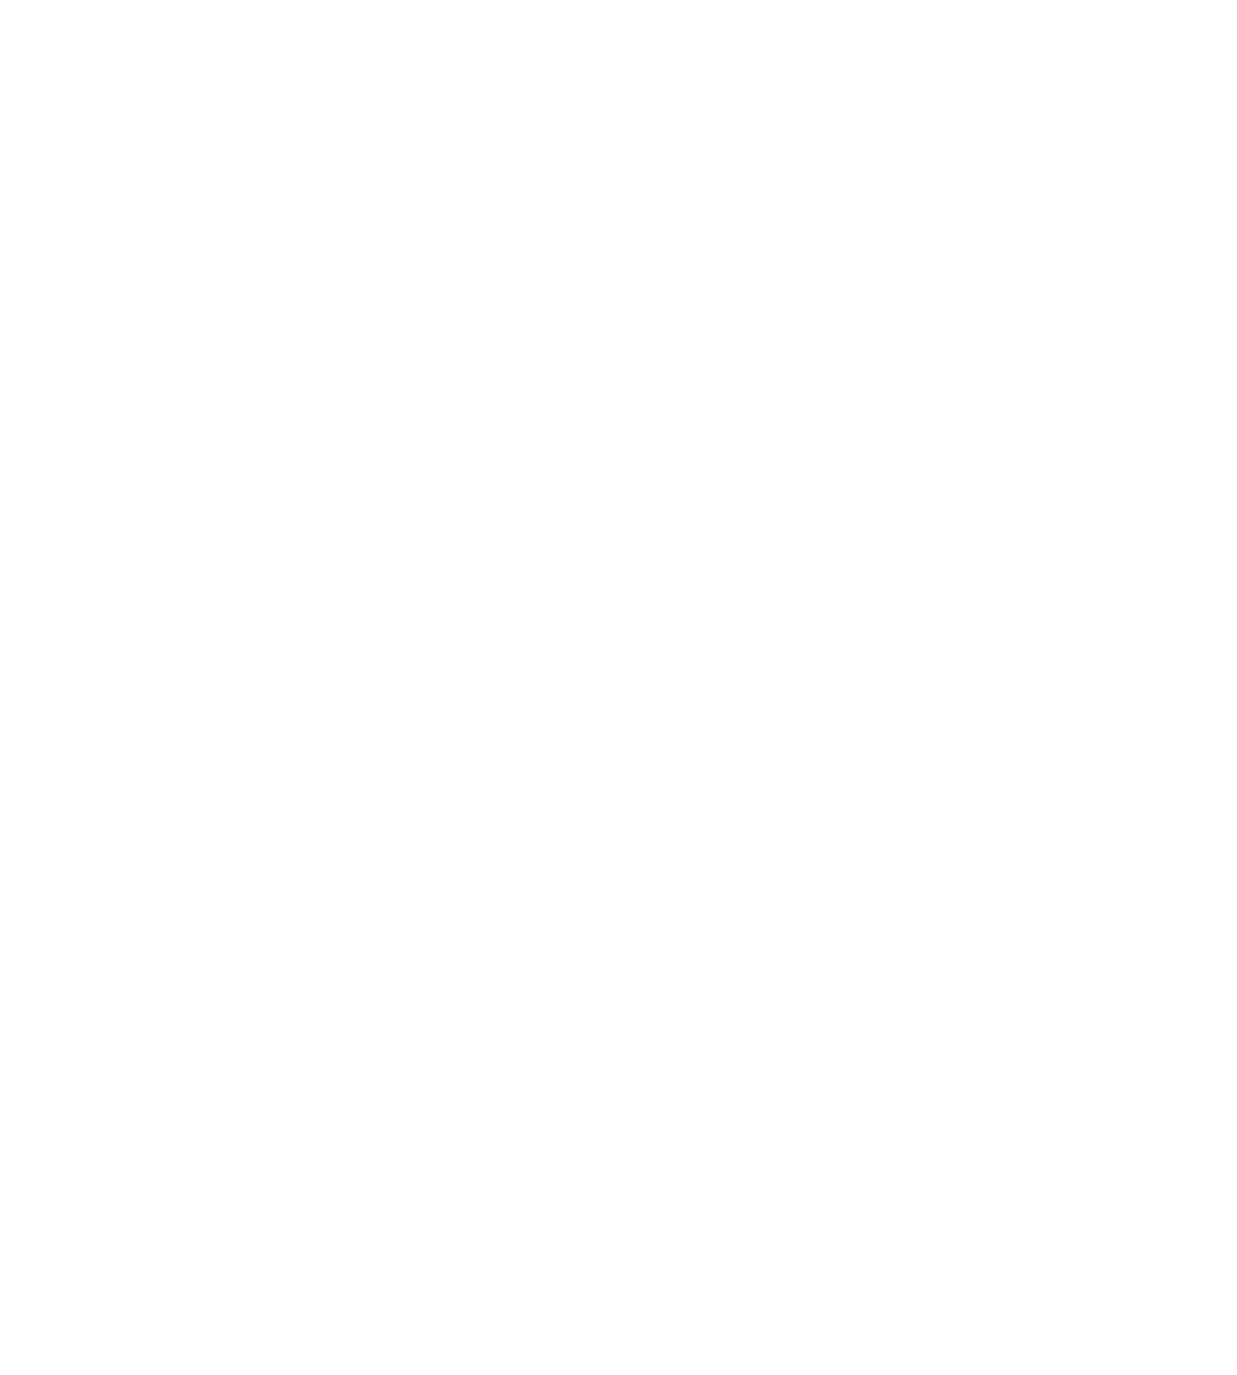 Forma triangular